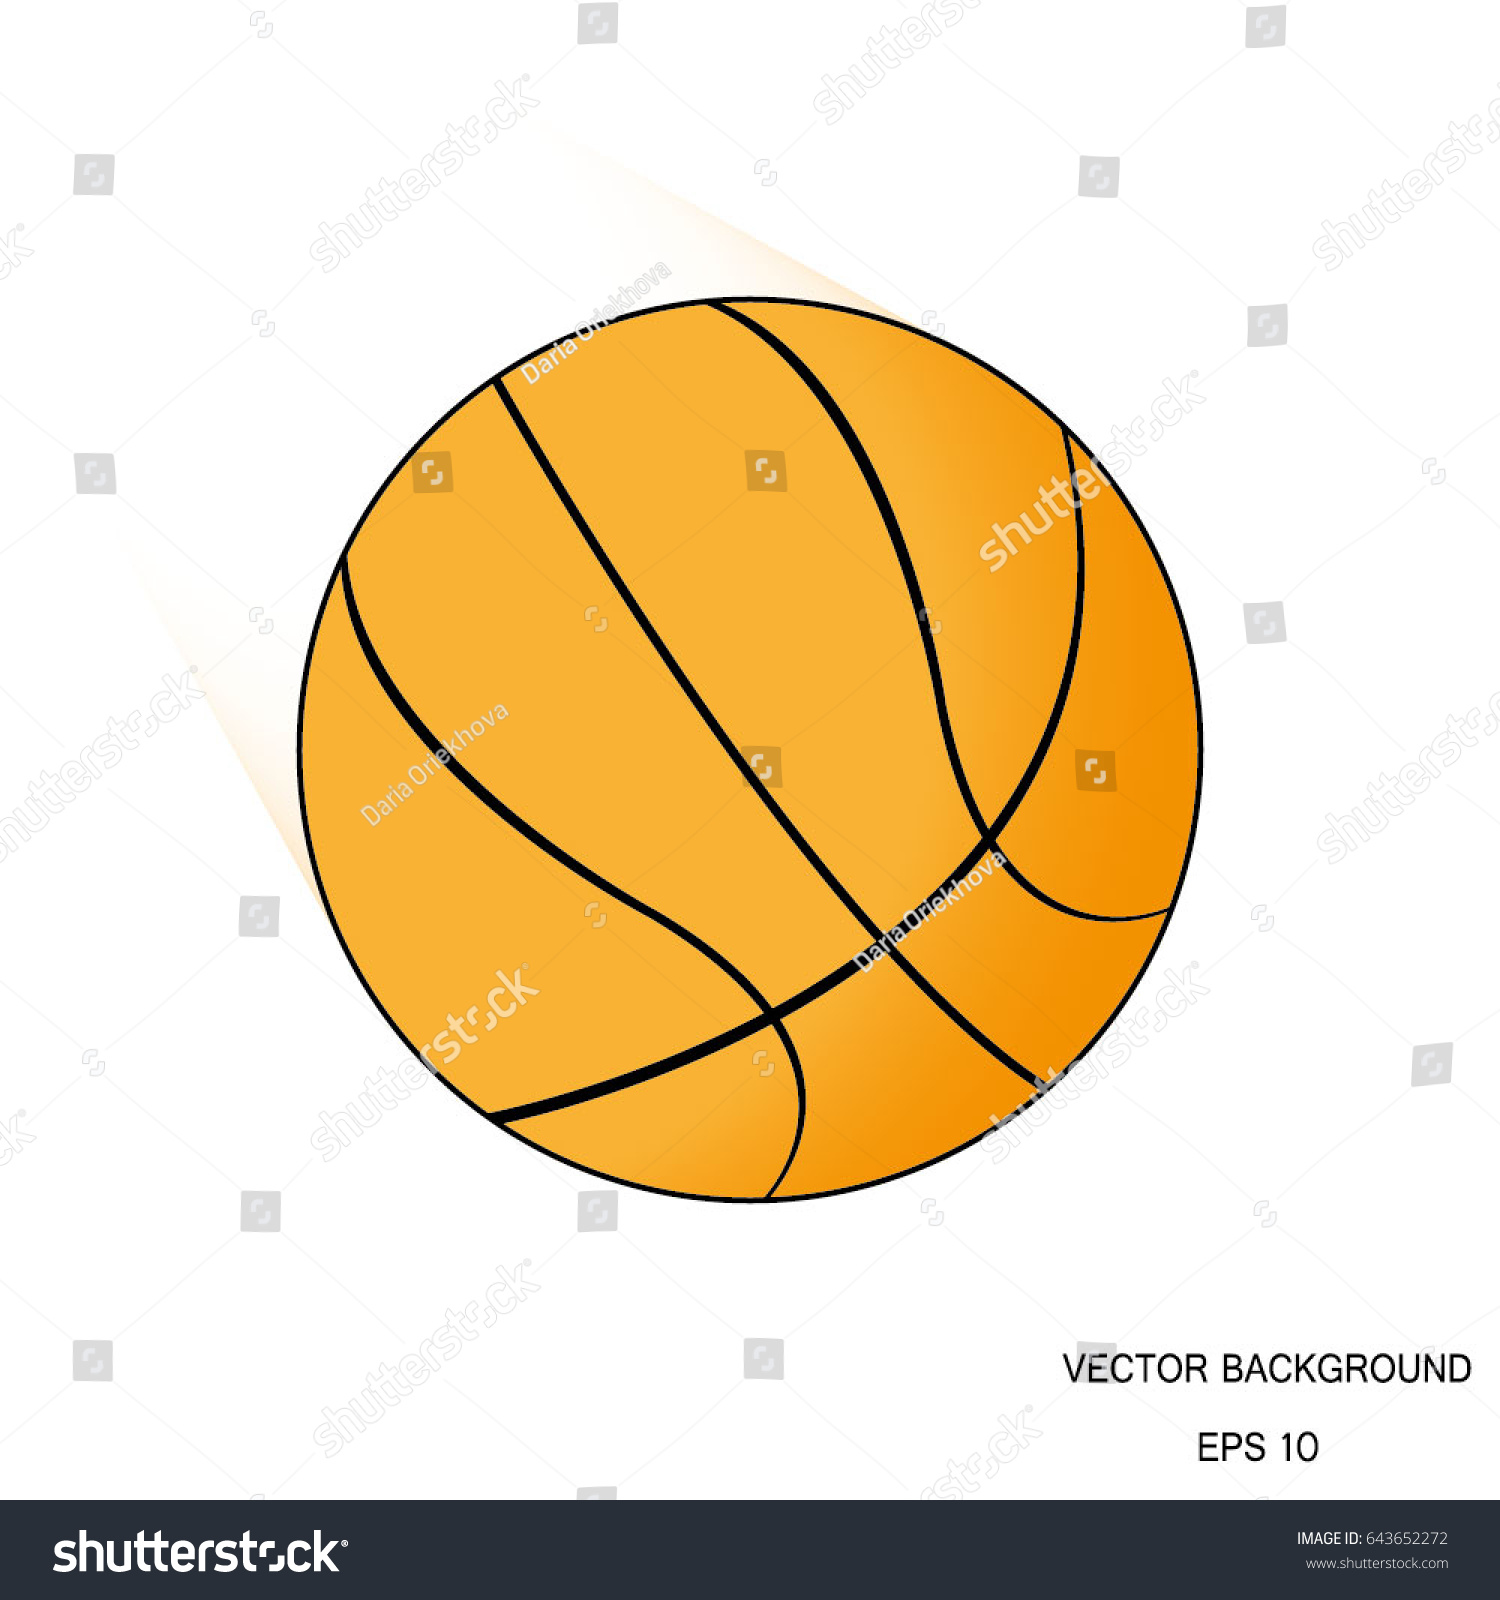 Symbol basketball vector ball design about stock vector 643652272 the symbol of basketball vector ball for design about basketball games or sport biocorpaavc Choice Image